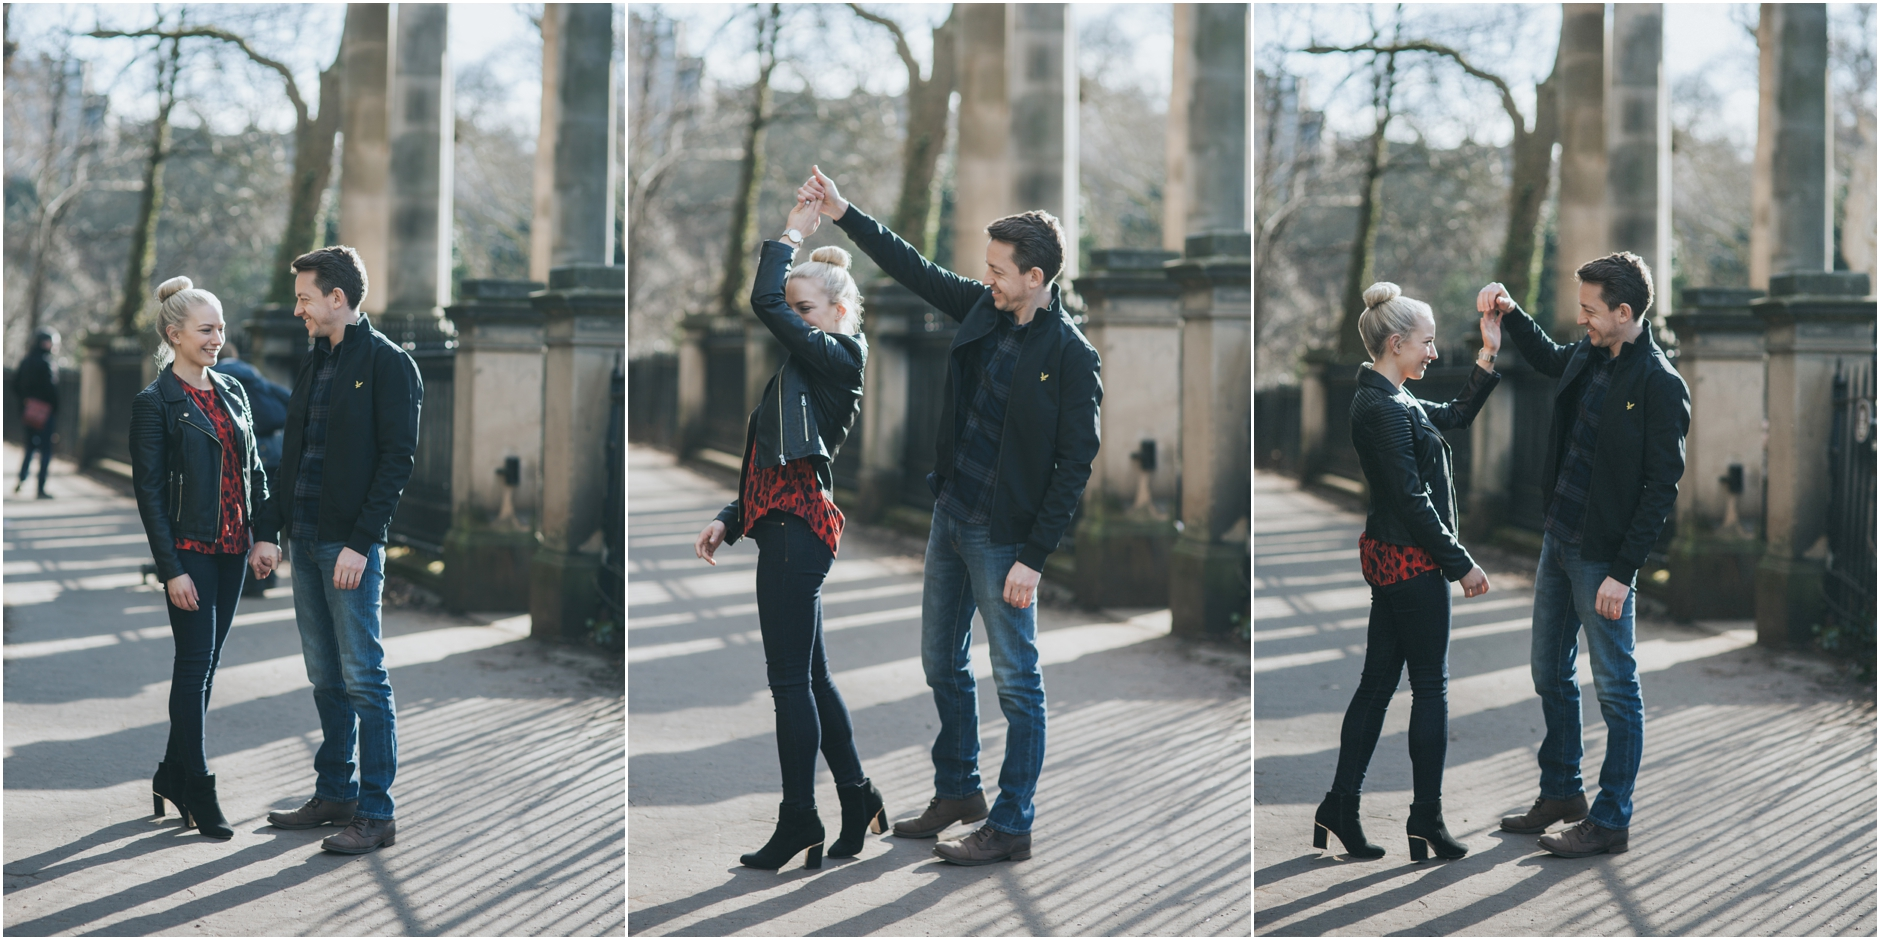 dean village edinburgh wedding engagement photoshoot